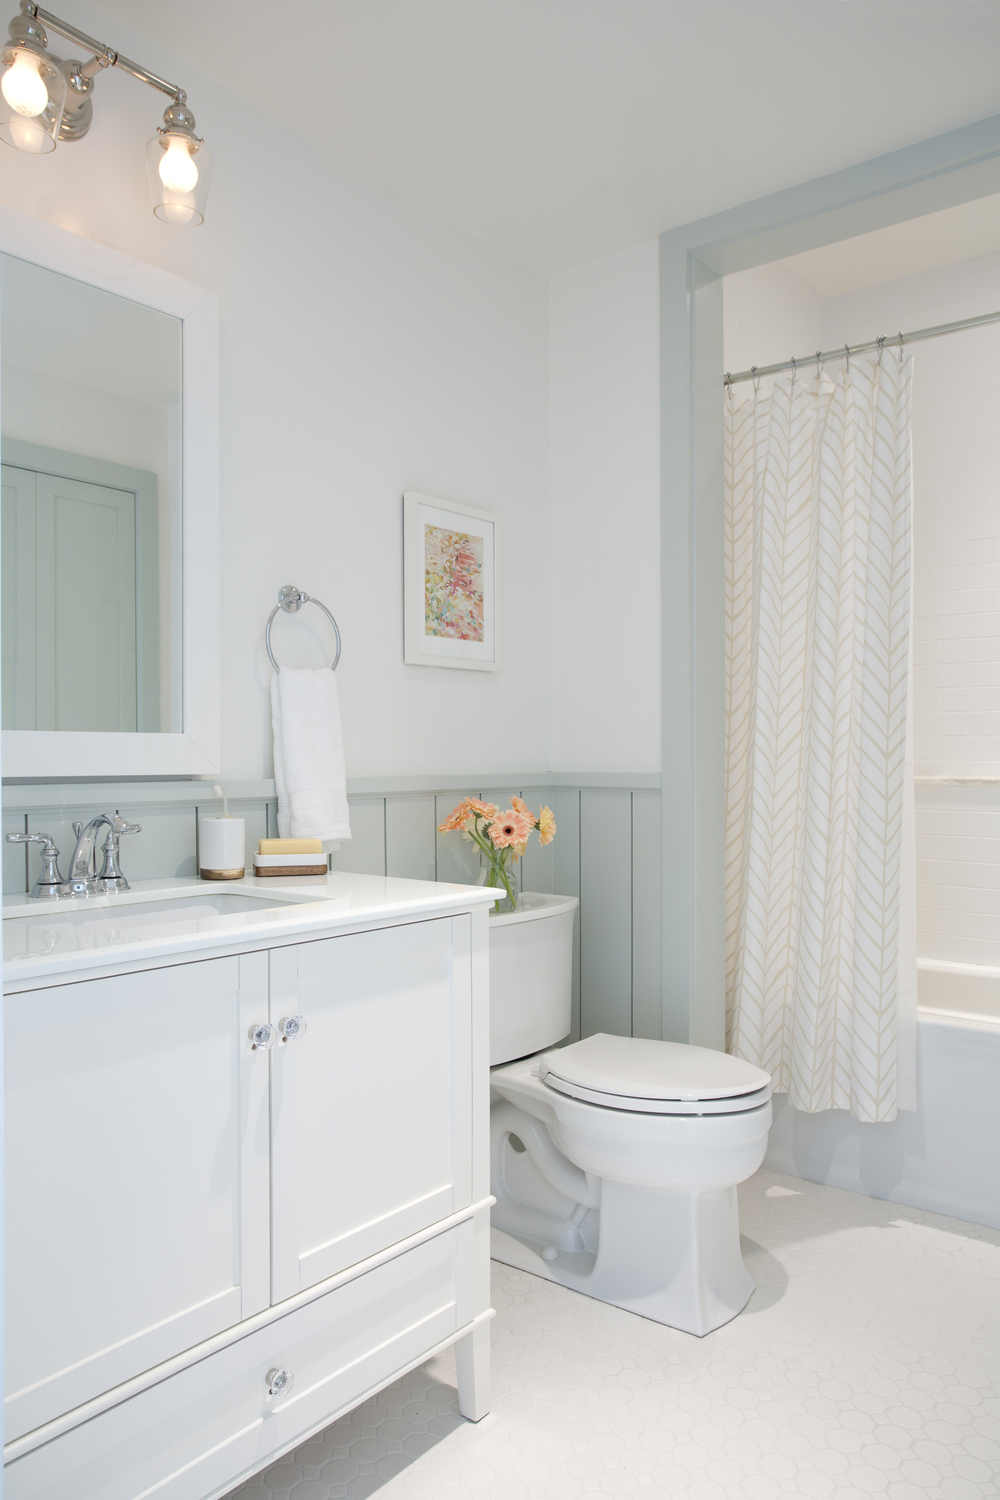 Delicieux Braun + Adams Ross Bathroom Remodel.JPG